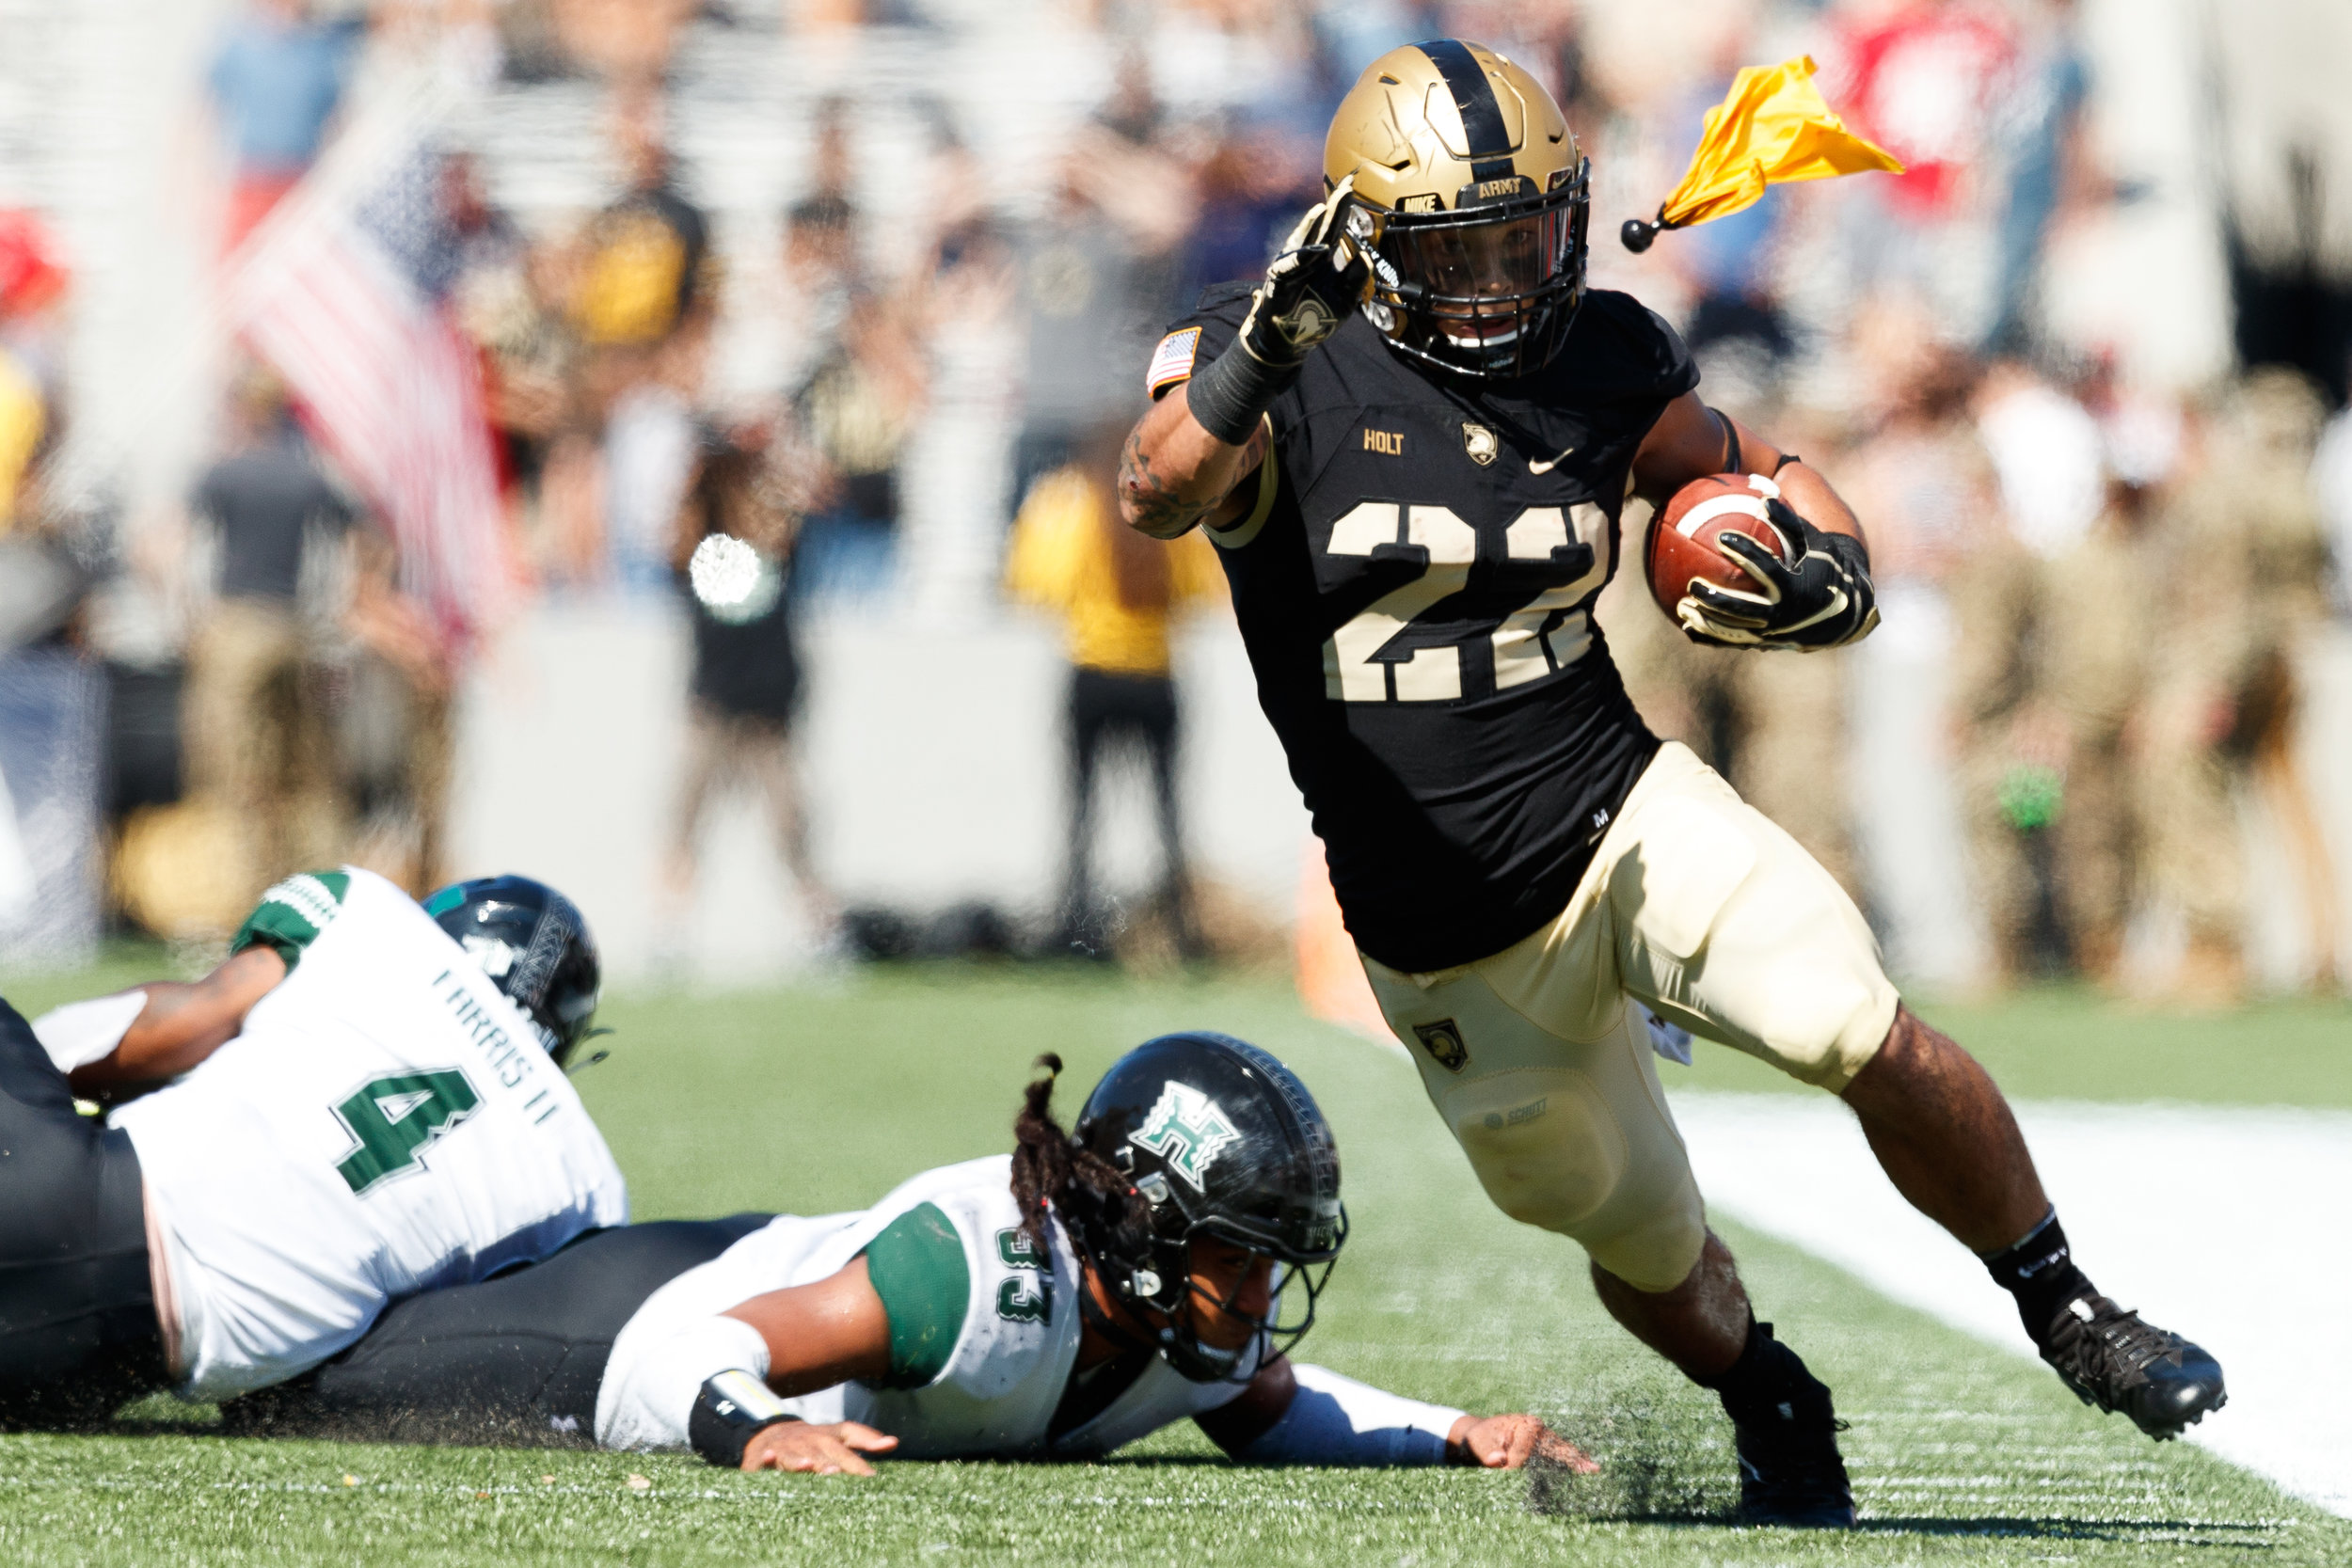 Calen Holt #22 of the Army Black Knights runs the ball as a flag is thrown during a game against the Hawaii Warriors at Michie Stadium in West Point, N.Y. on Sept. 15, 2018. Army defeated Hawaii 28-21.